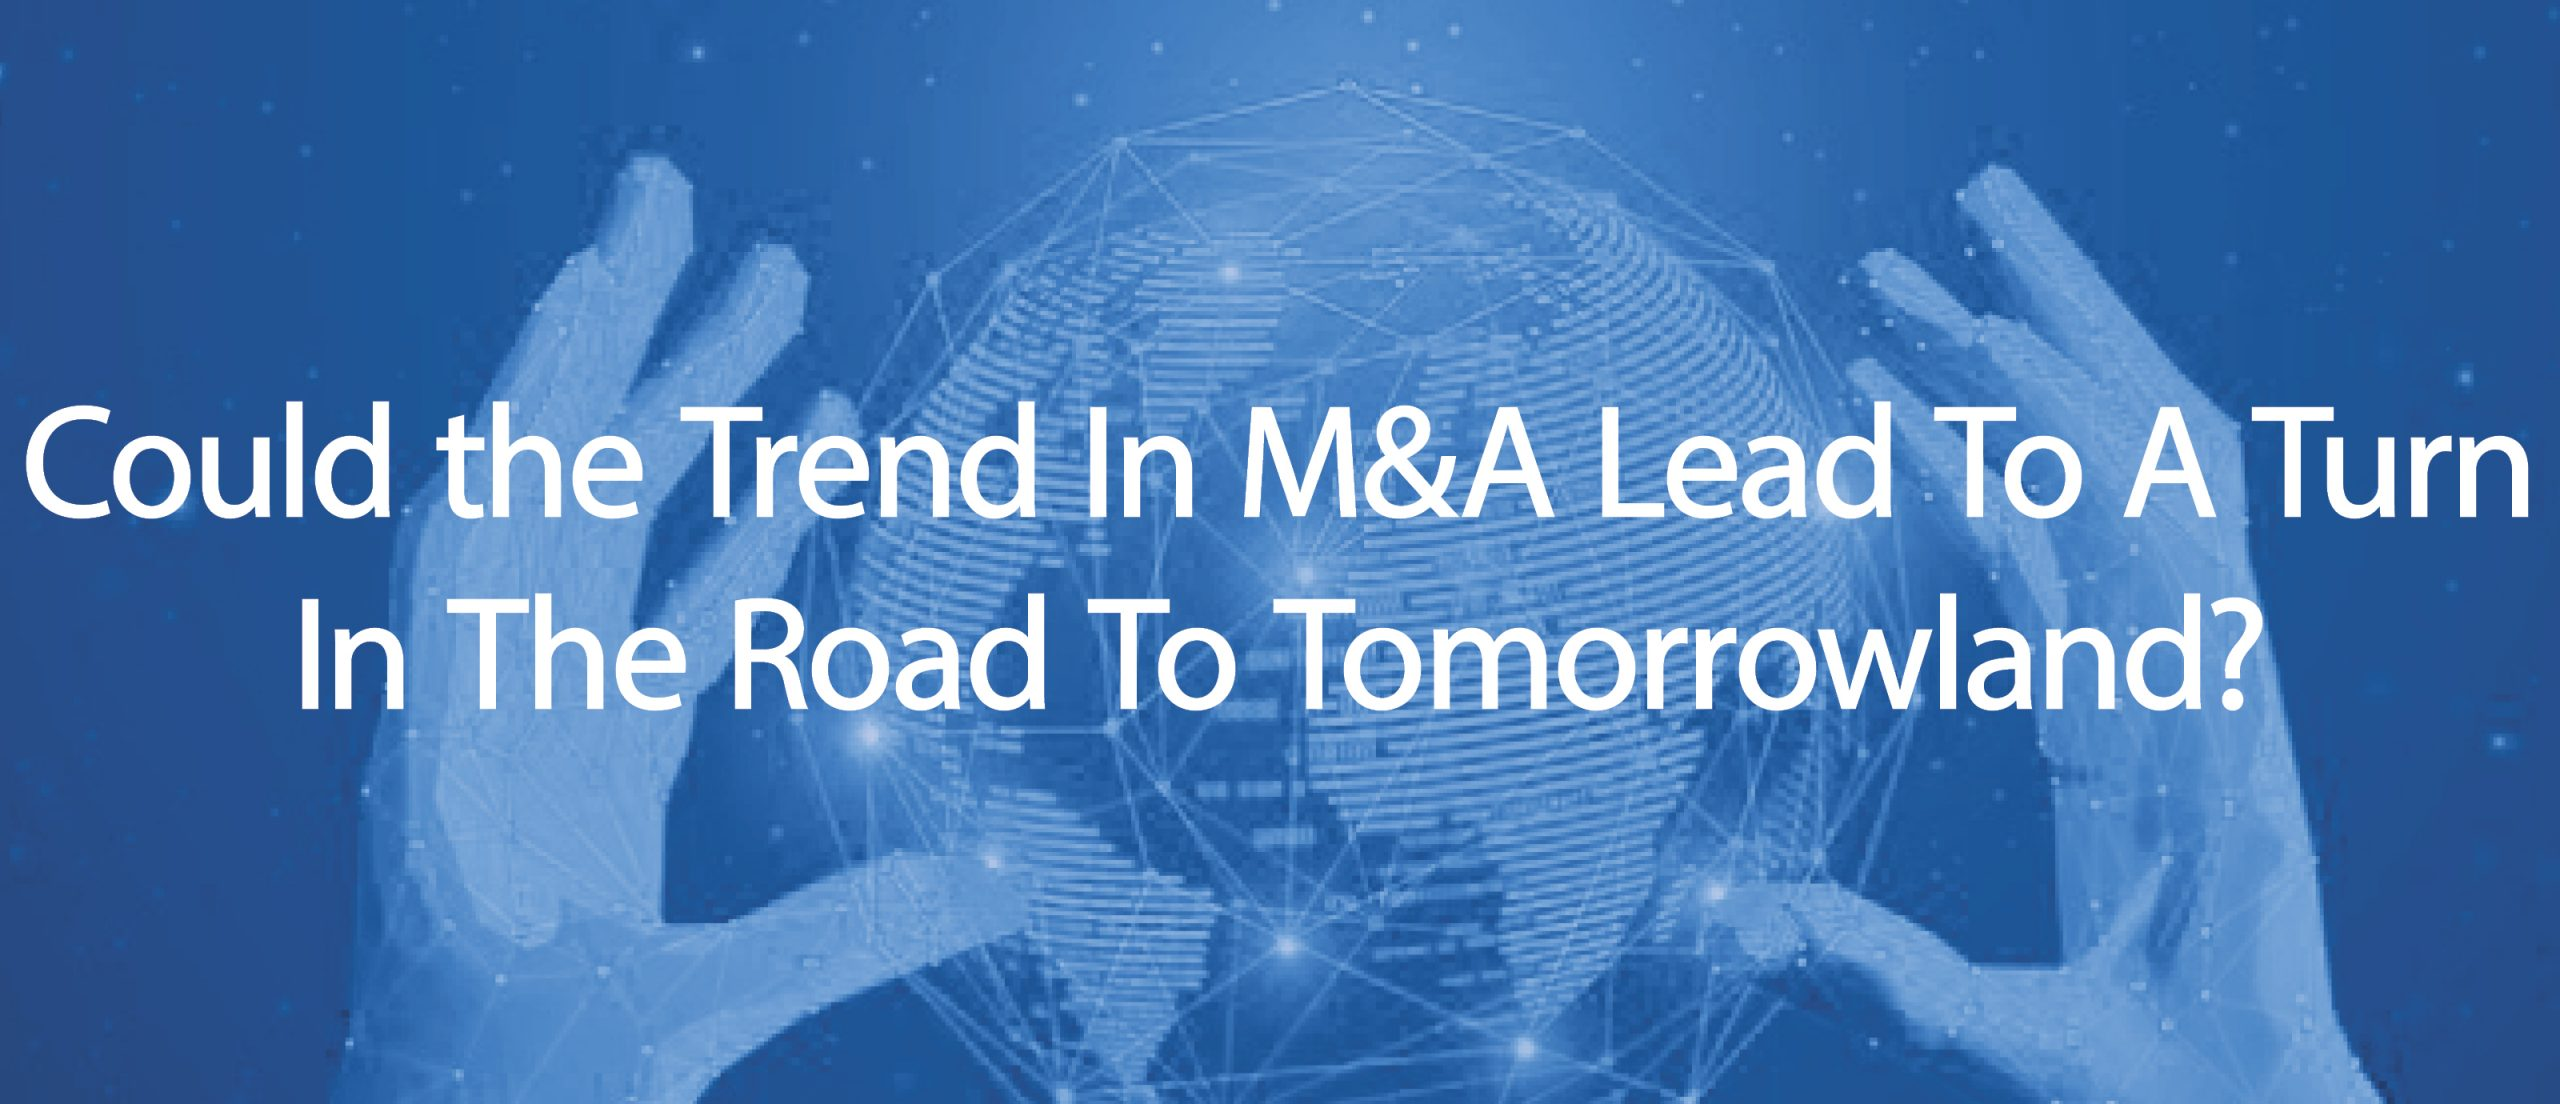 Blog title: Could the trend in M&A lead to a turn in the road to tomorrowland?